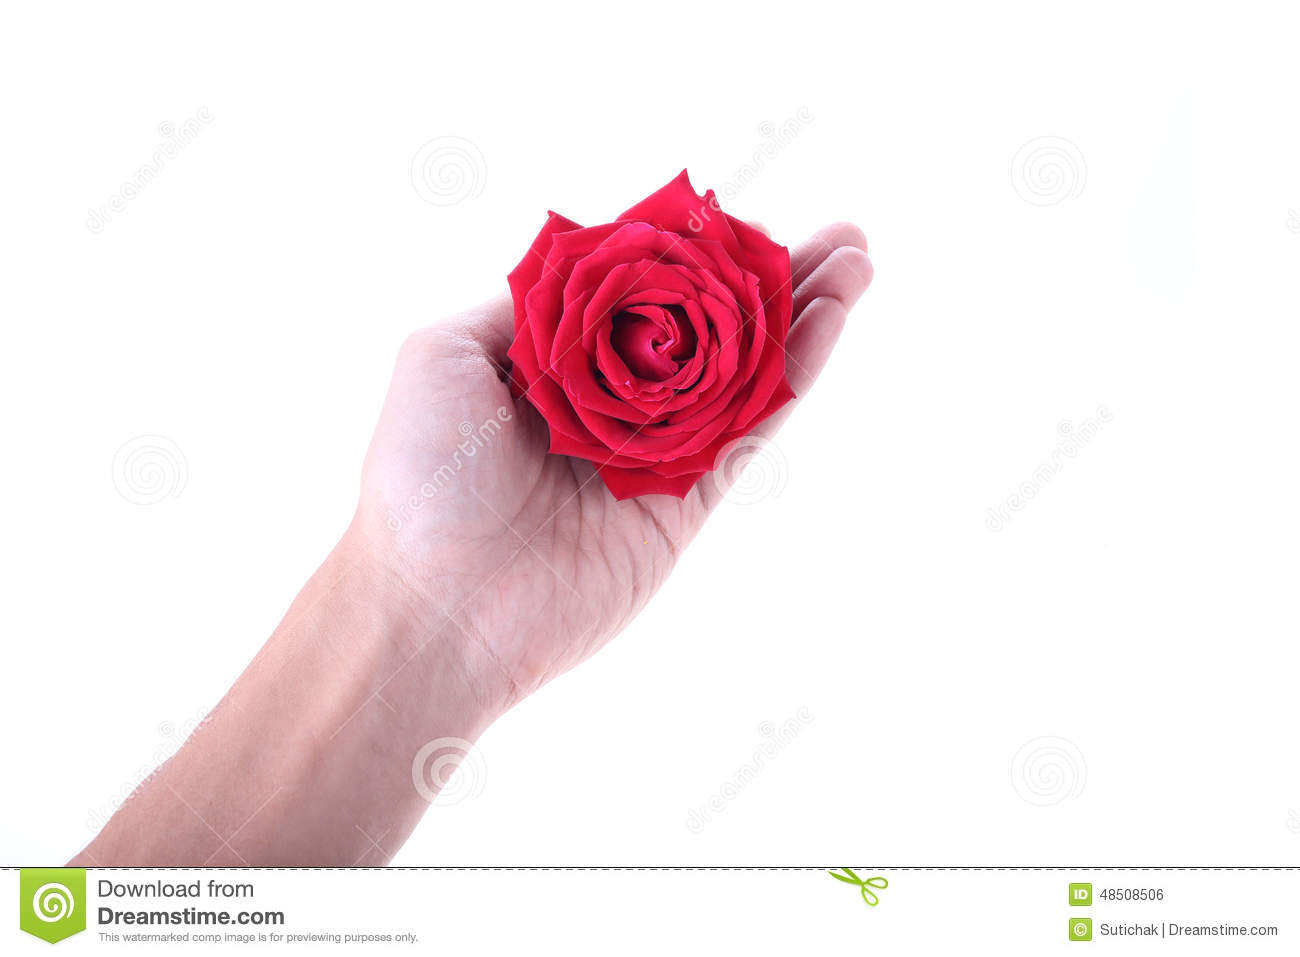 Hand Holding A Red Rose Flower Isolated On White Background